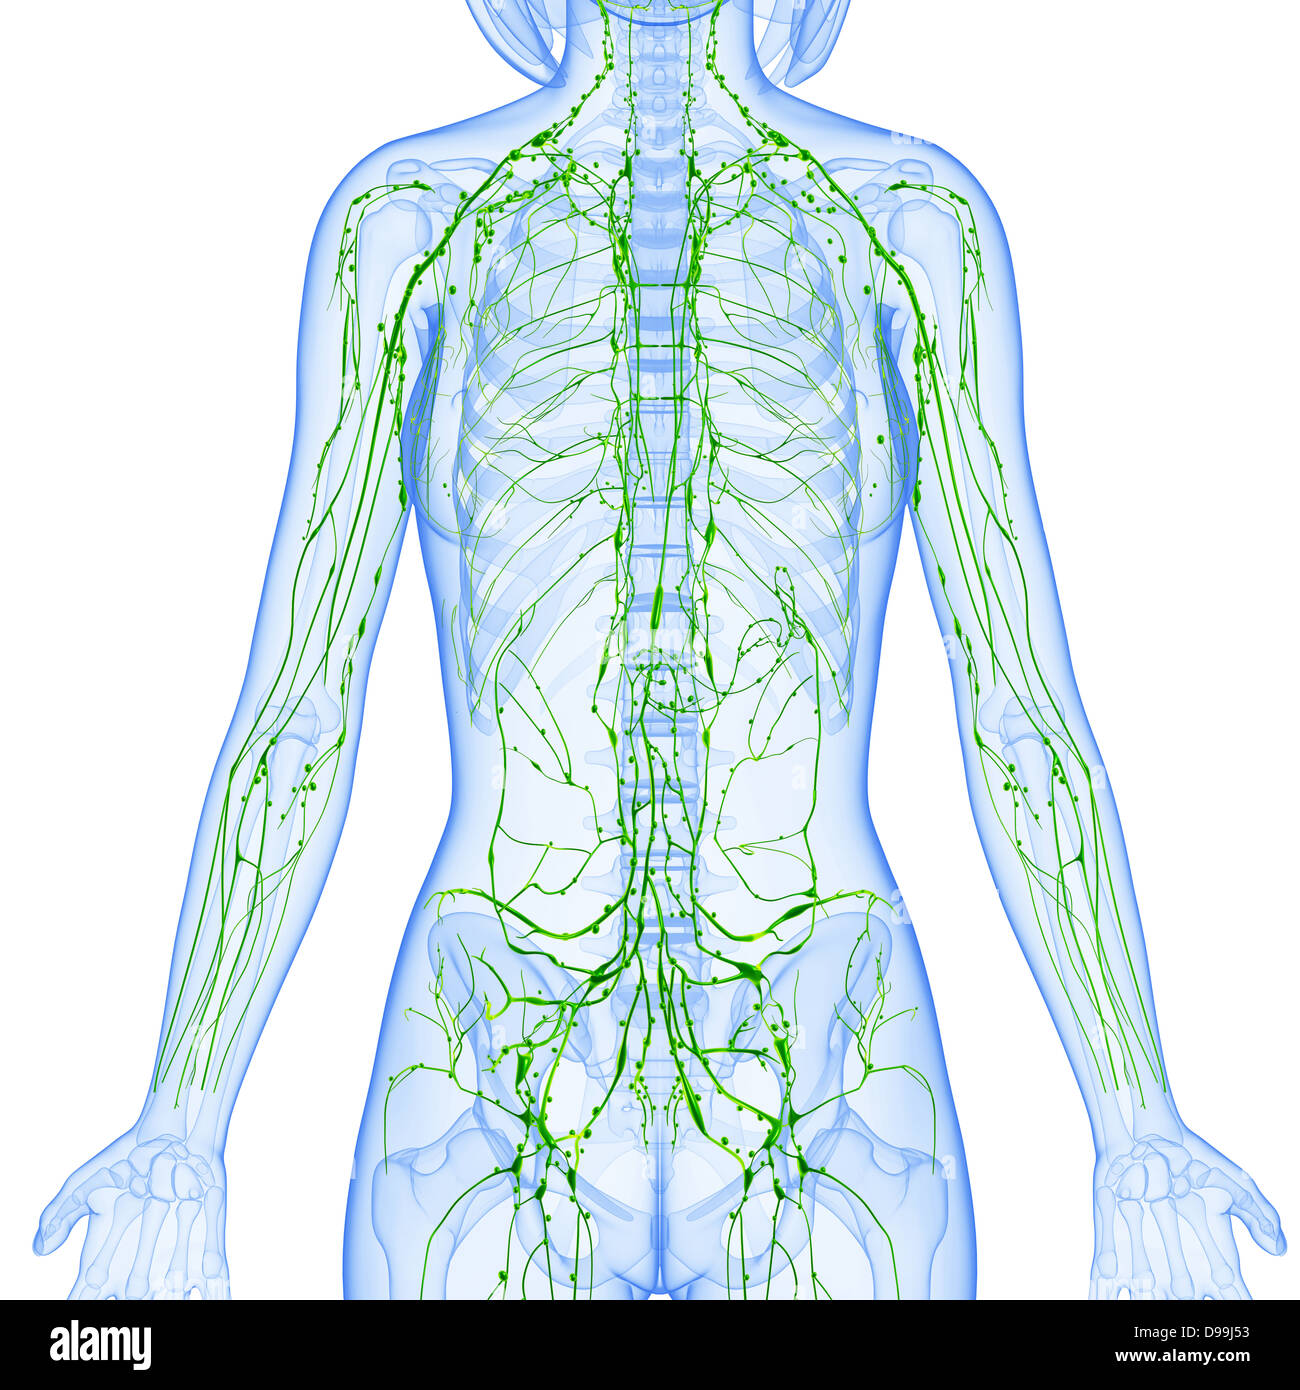 Lymphatic System Of Female Body Anatomy In X Ray Form Stock Photo